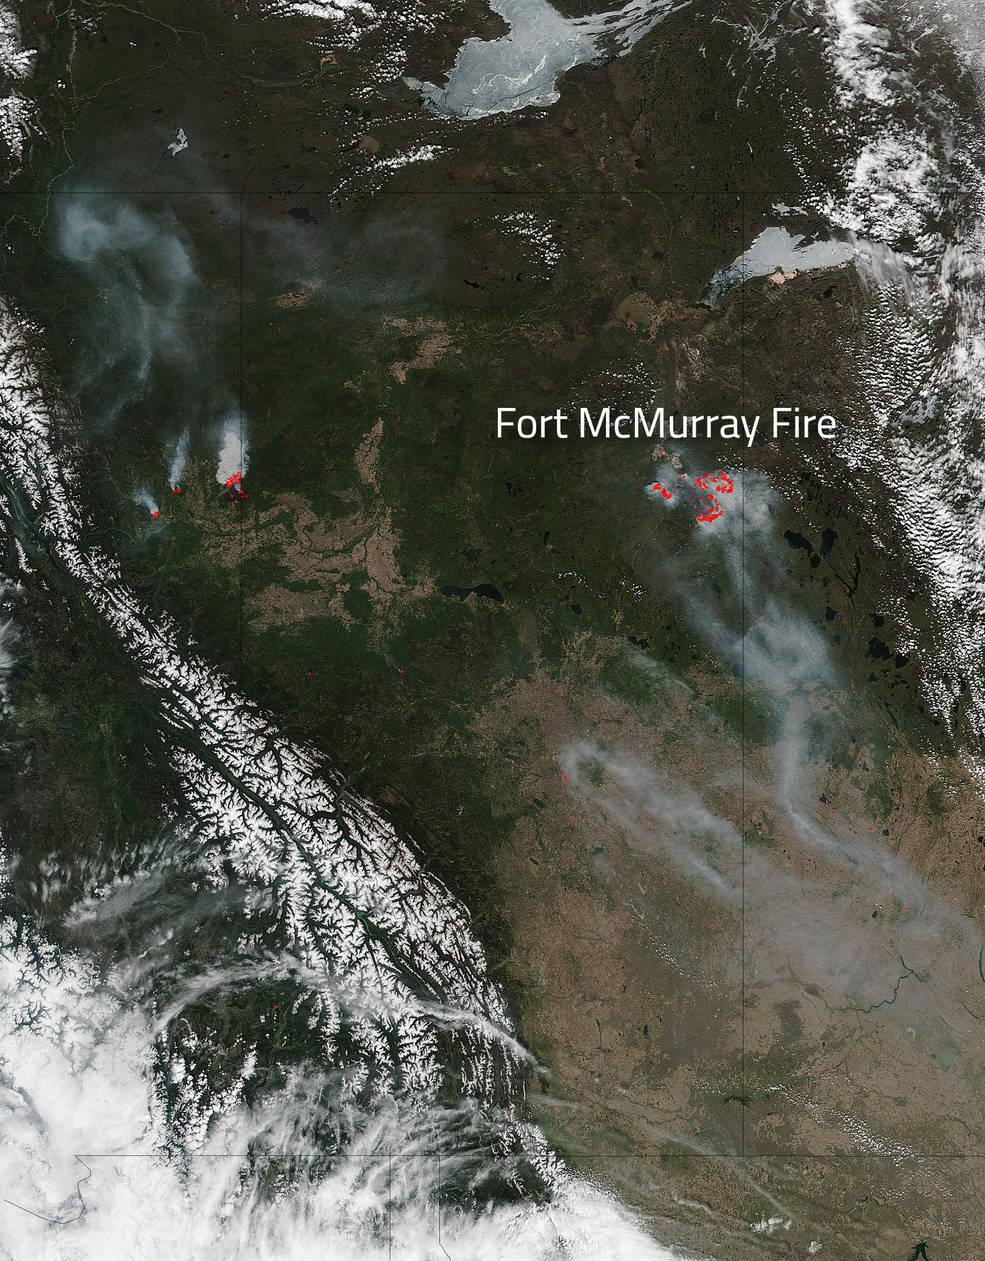 Fort McMurray and other fires in Alberta, Canada on May 15, 2016